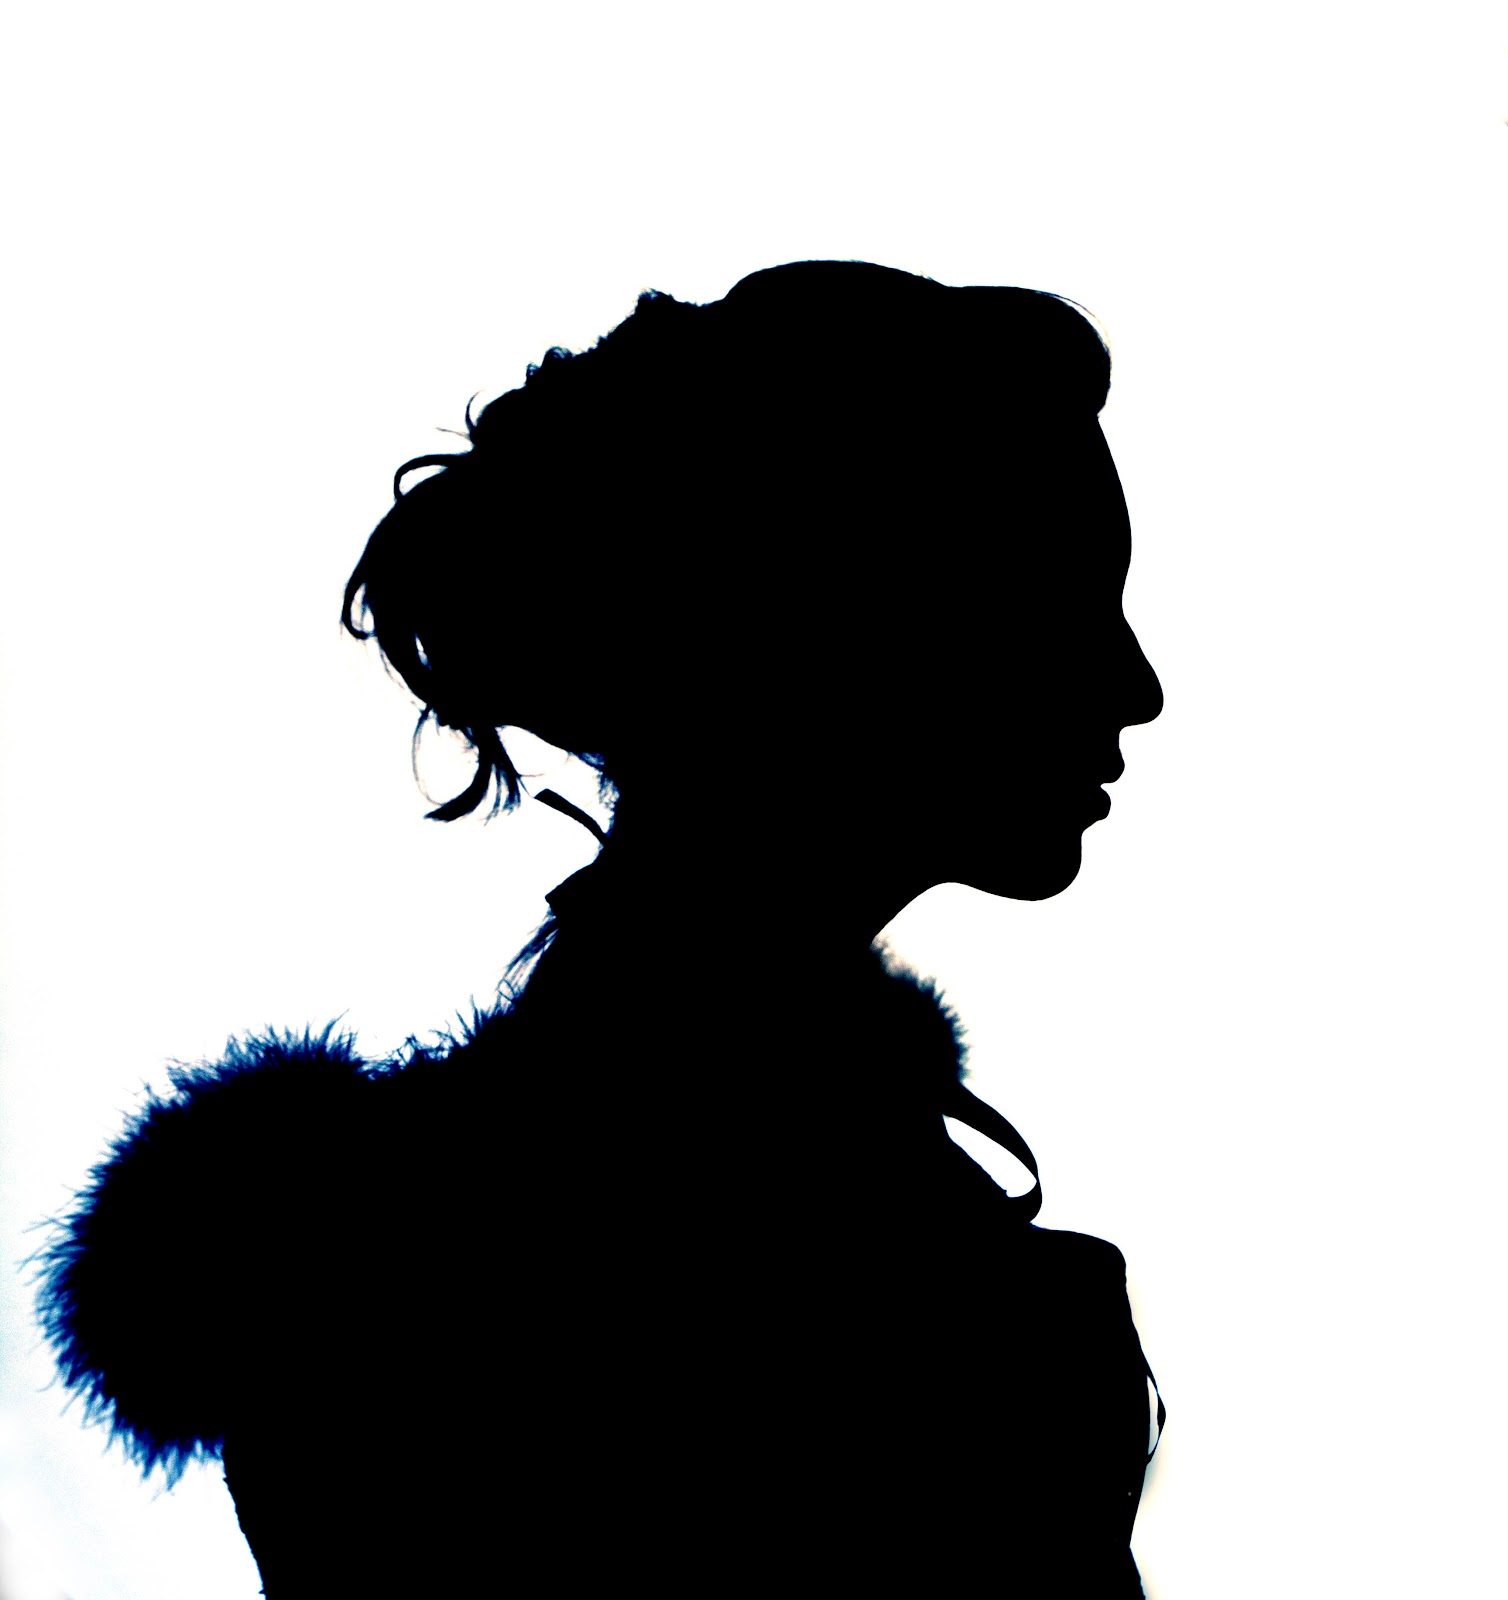 Woman Profile Silhouette - Cliparts.co